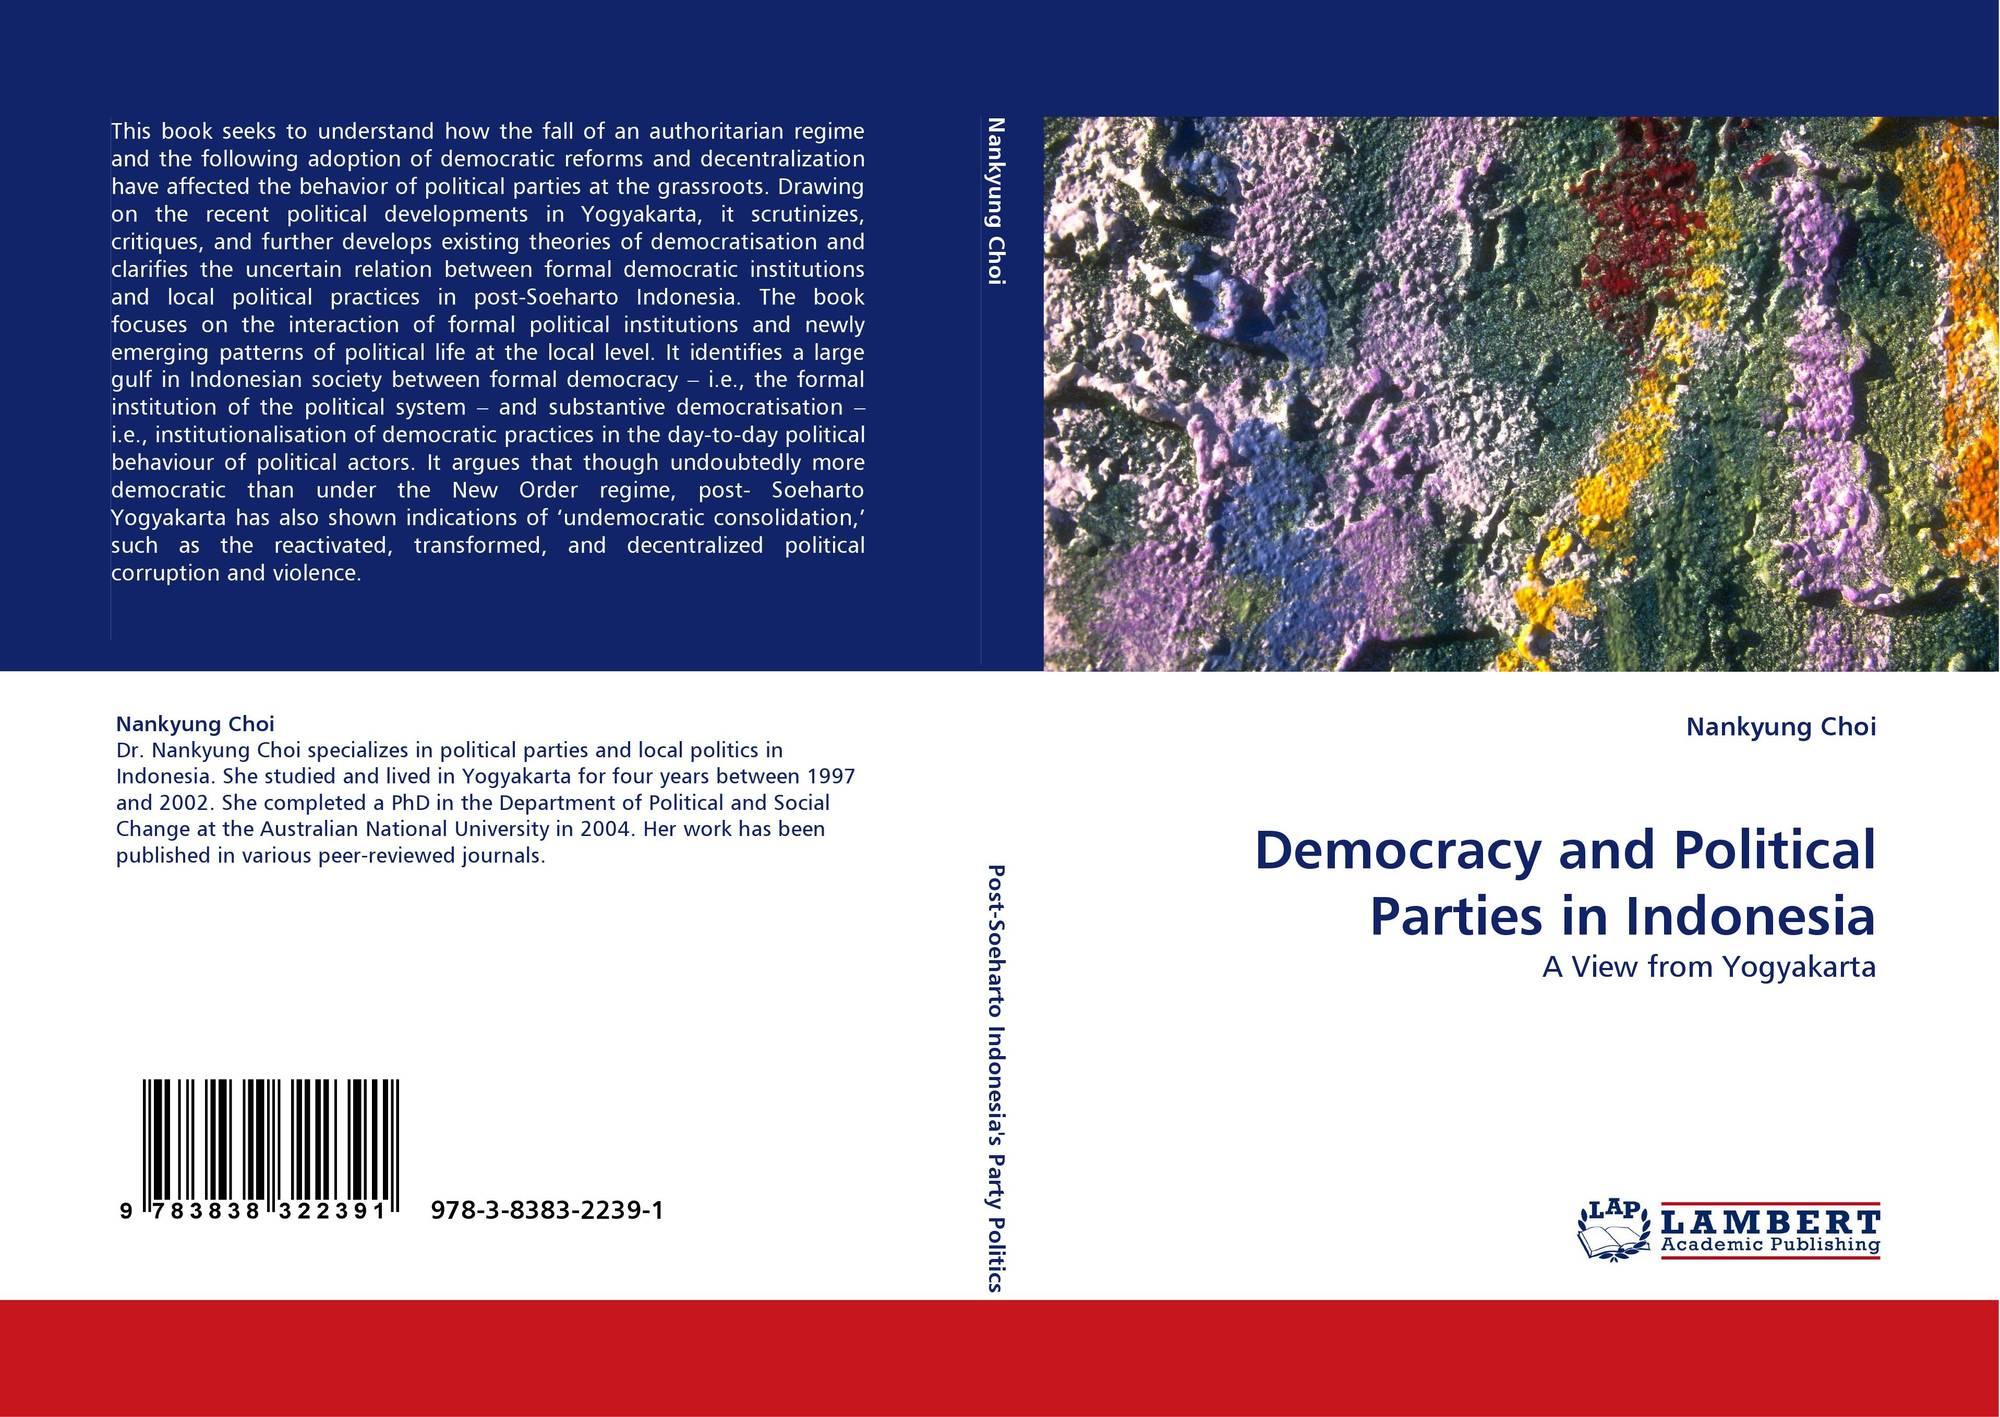 an analysis of the us democracy as the unites states political system a legitimate democracy However, the united states ranked 15 th in the western hemisphere in system support, far lower than many countries with shorter democratic histories and lower levels of economic development.